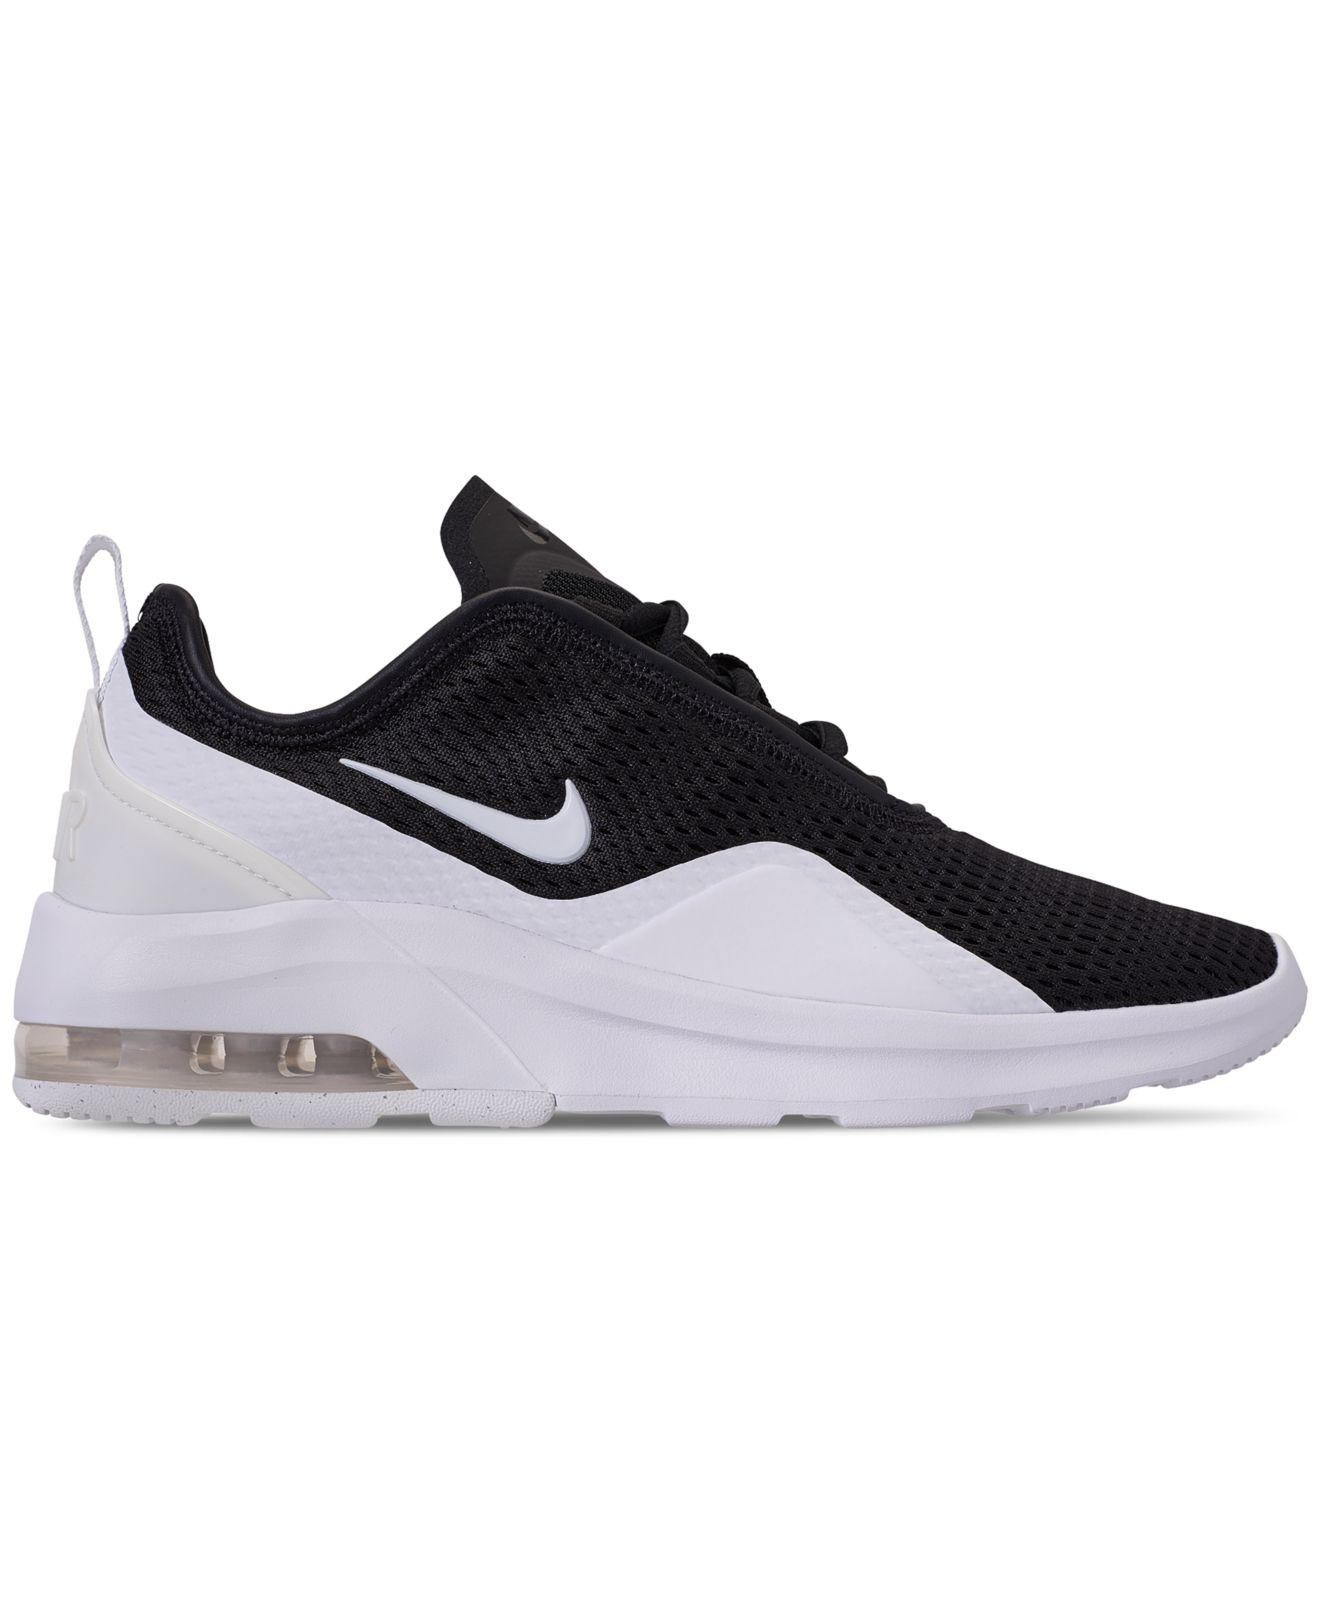 promo code ac689 78a7f Nike Air Max Motion 2 Casual Sneakers From Finish Line in Black - Lyst